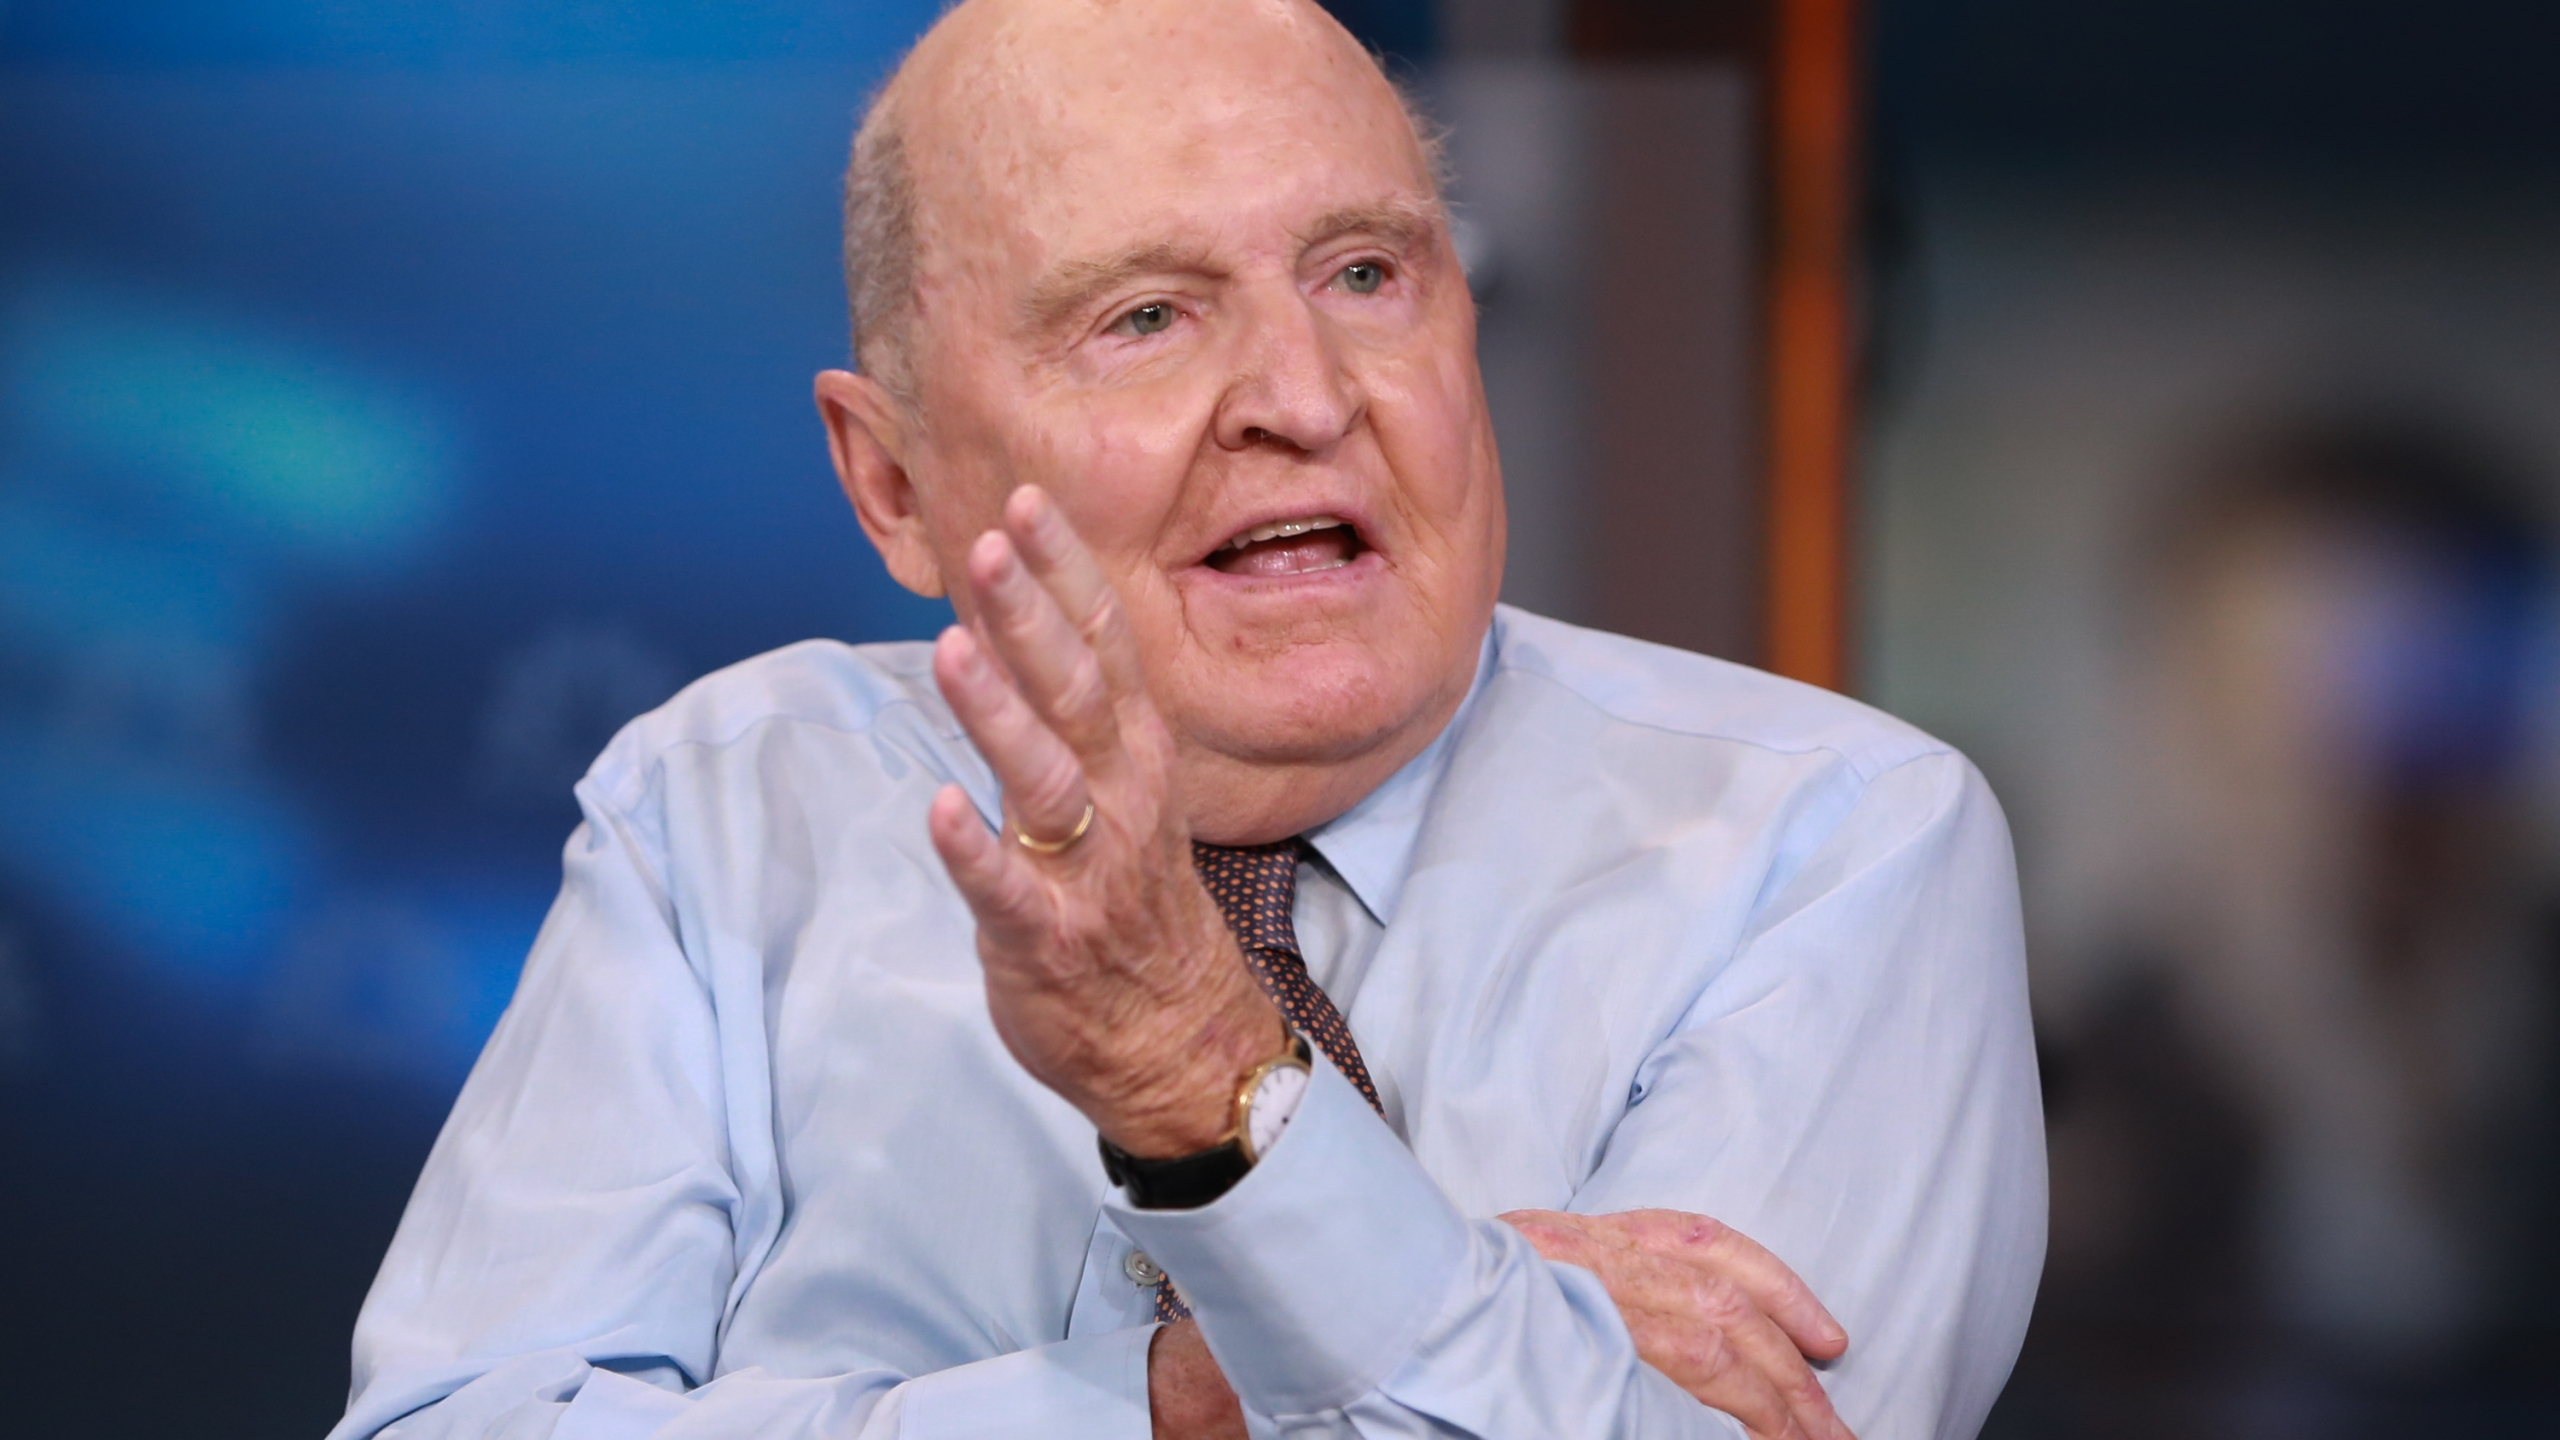 Jack Welch, former chairman and CEO of General Electric, appears in an interview on Sept. 24, 2015 (David Orrell/CNBC/NBCU Photo Bank/NBCUniversal via Getty Images)